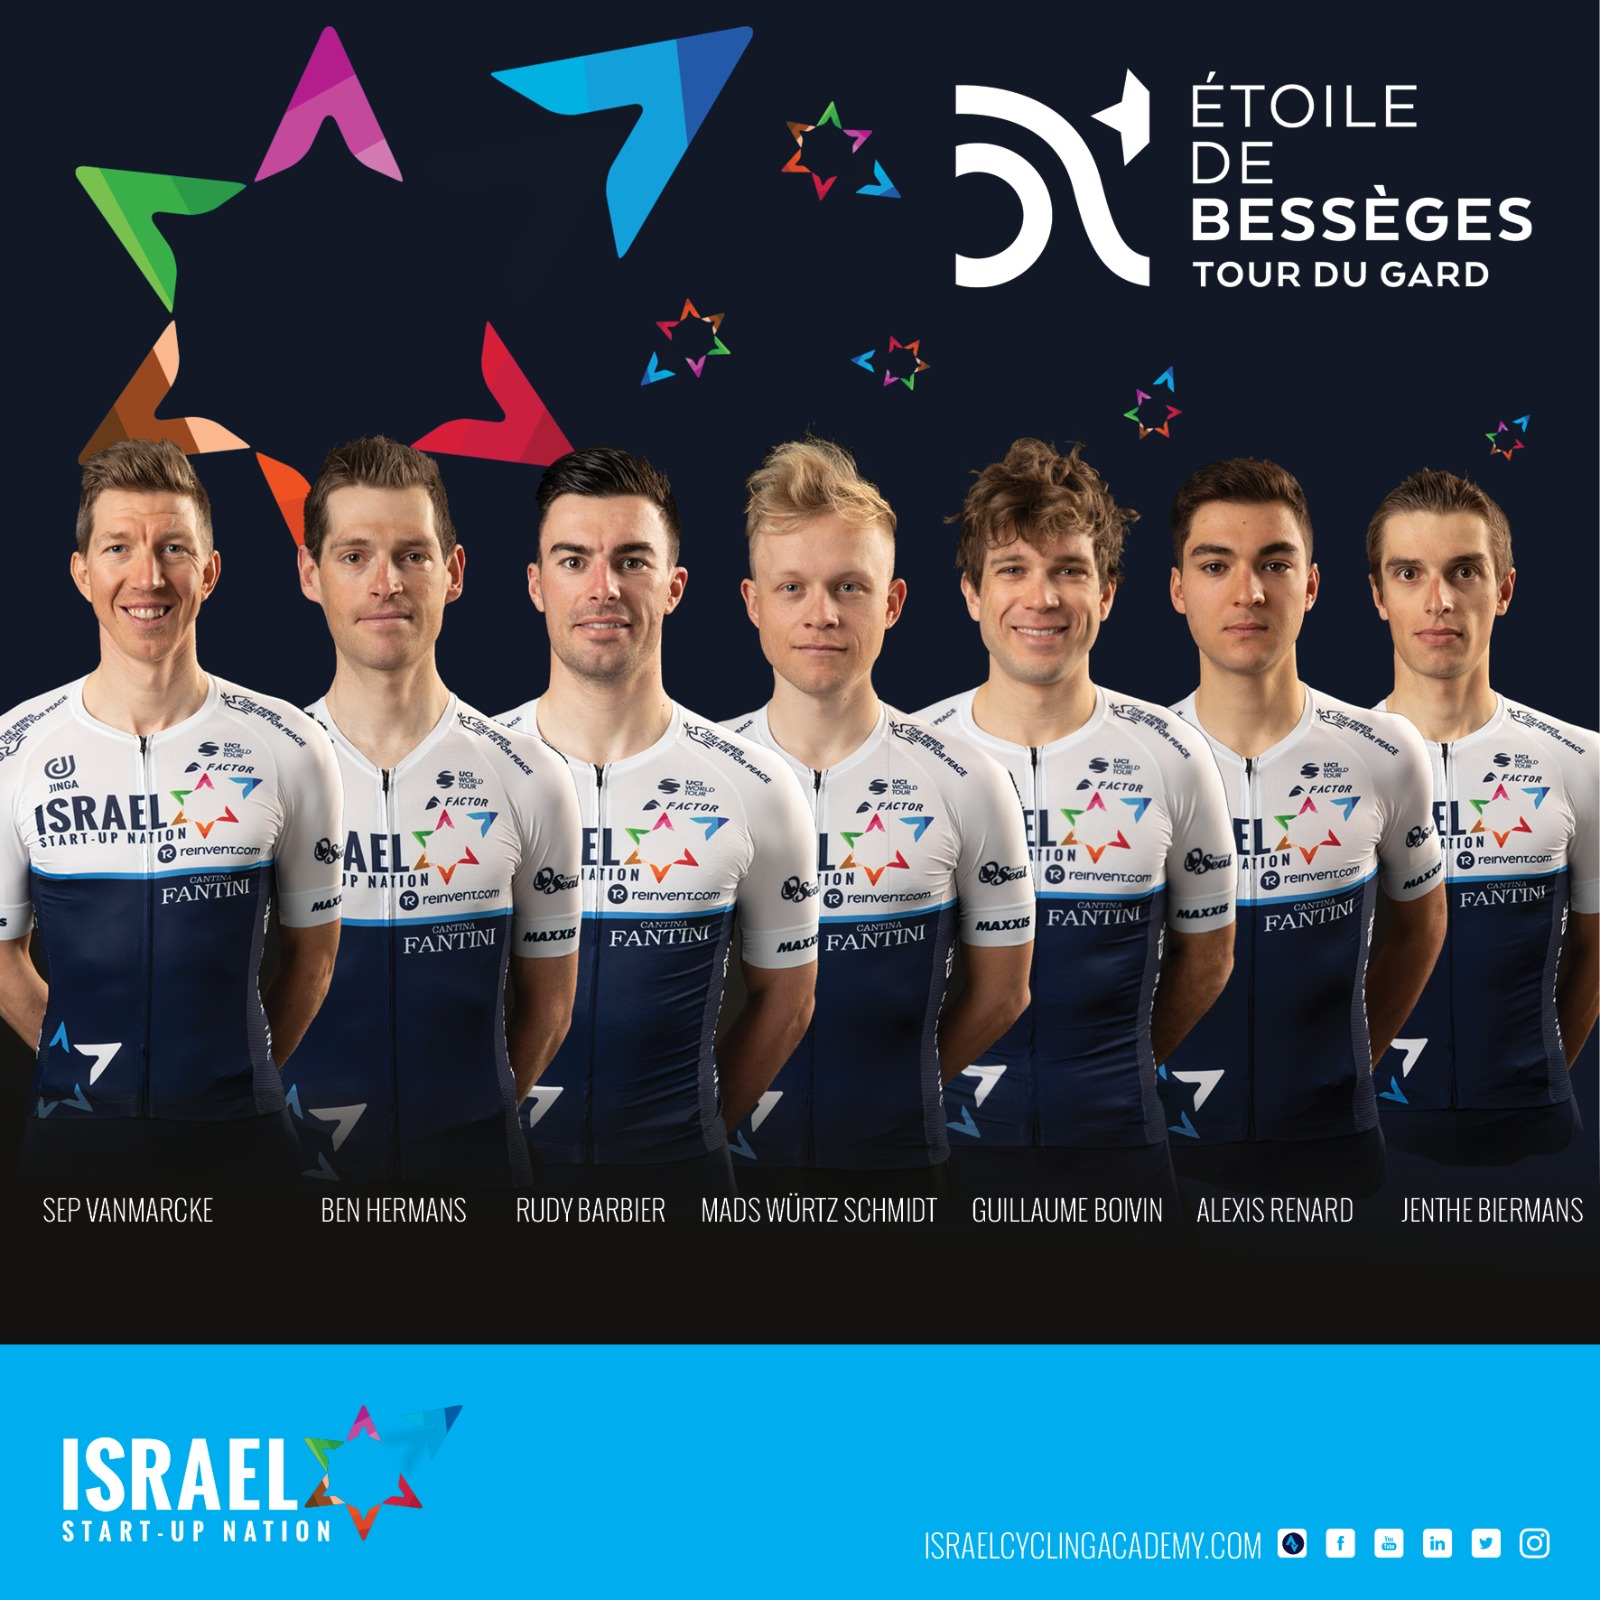 Race season is (finally) ON: Israel Start-Up Nation races Etoile de Besseges